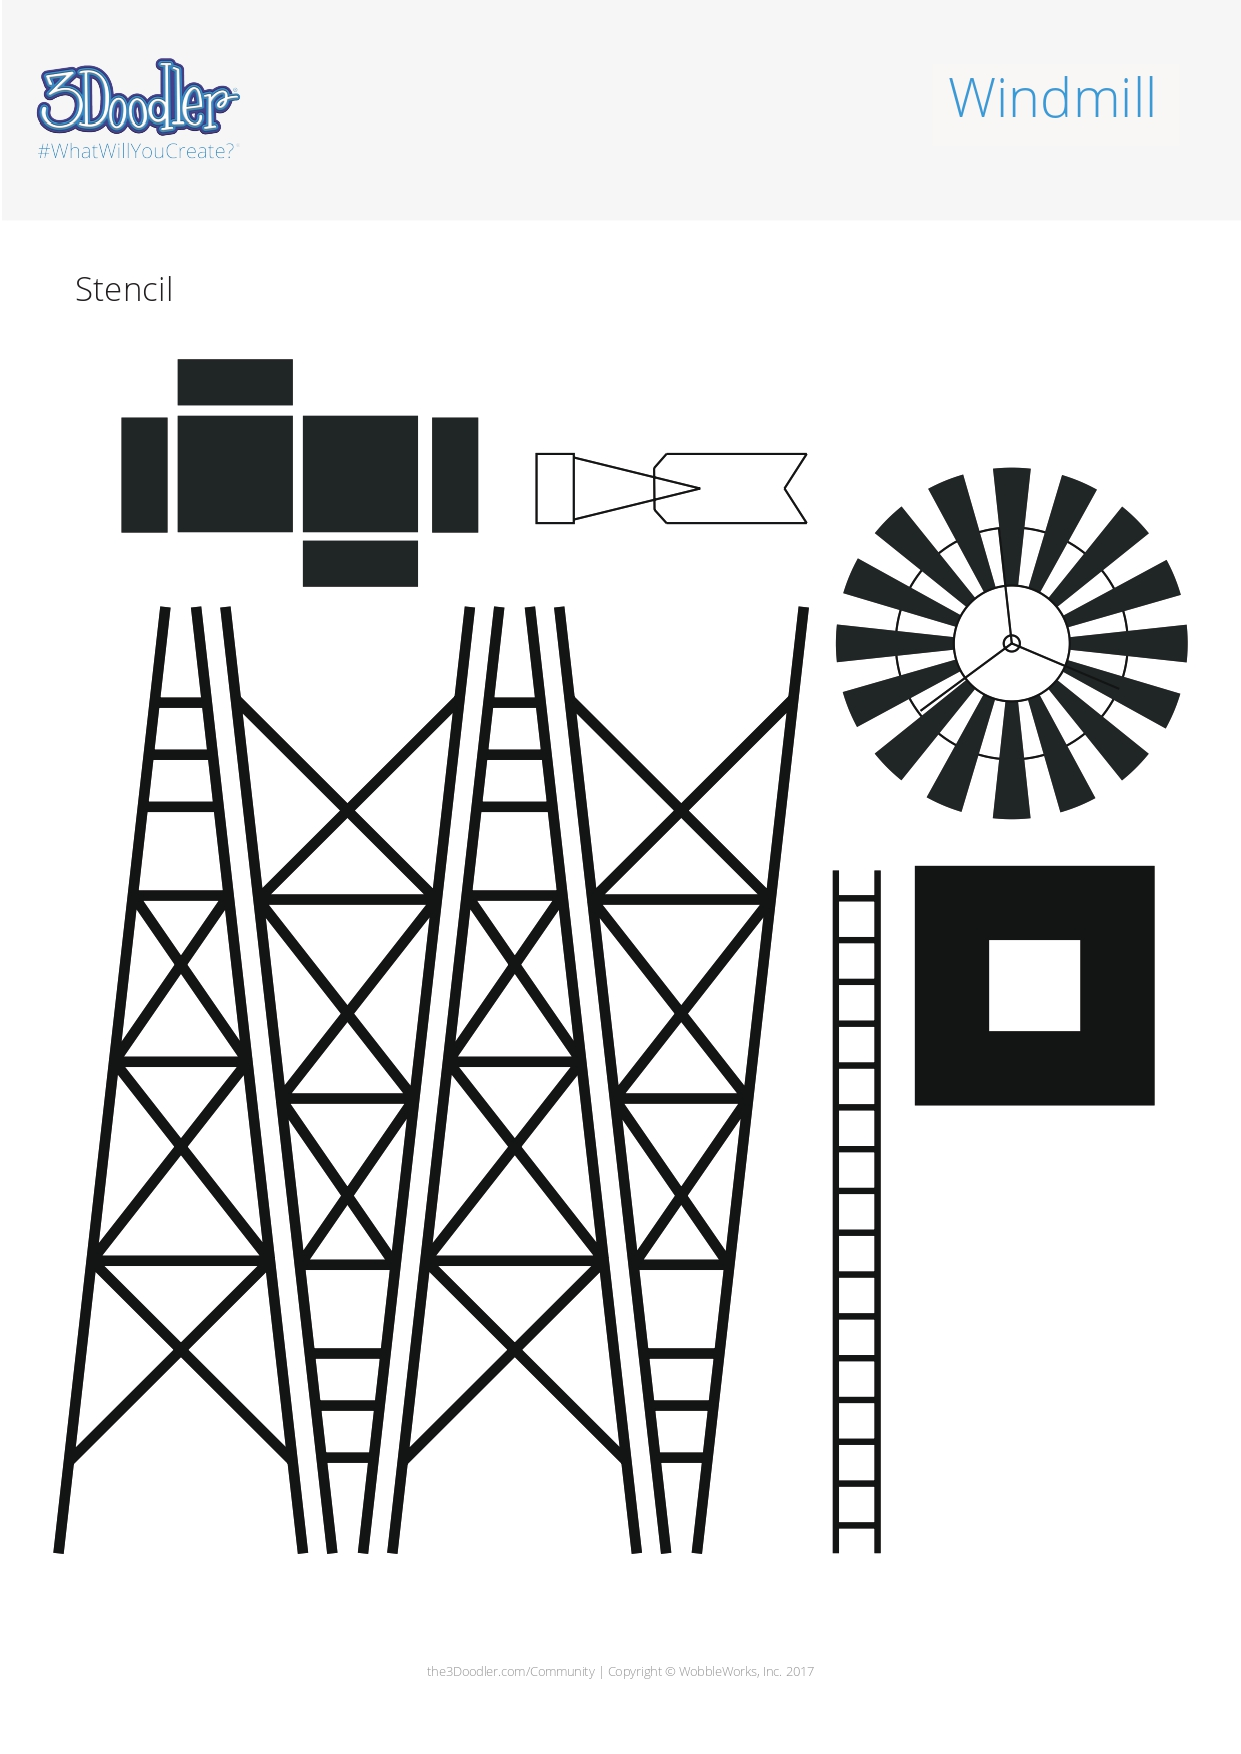 3D Pen Stencil Template Windmill